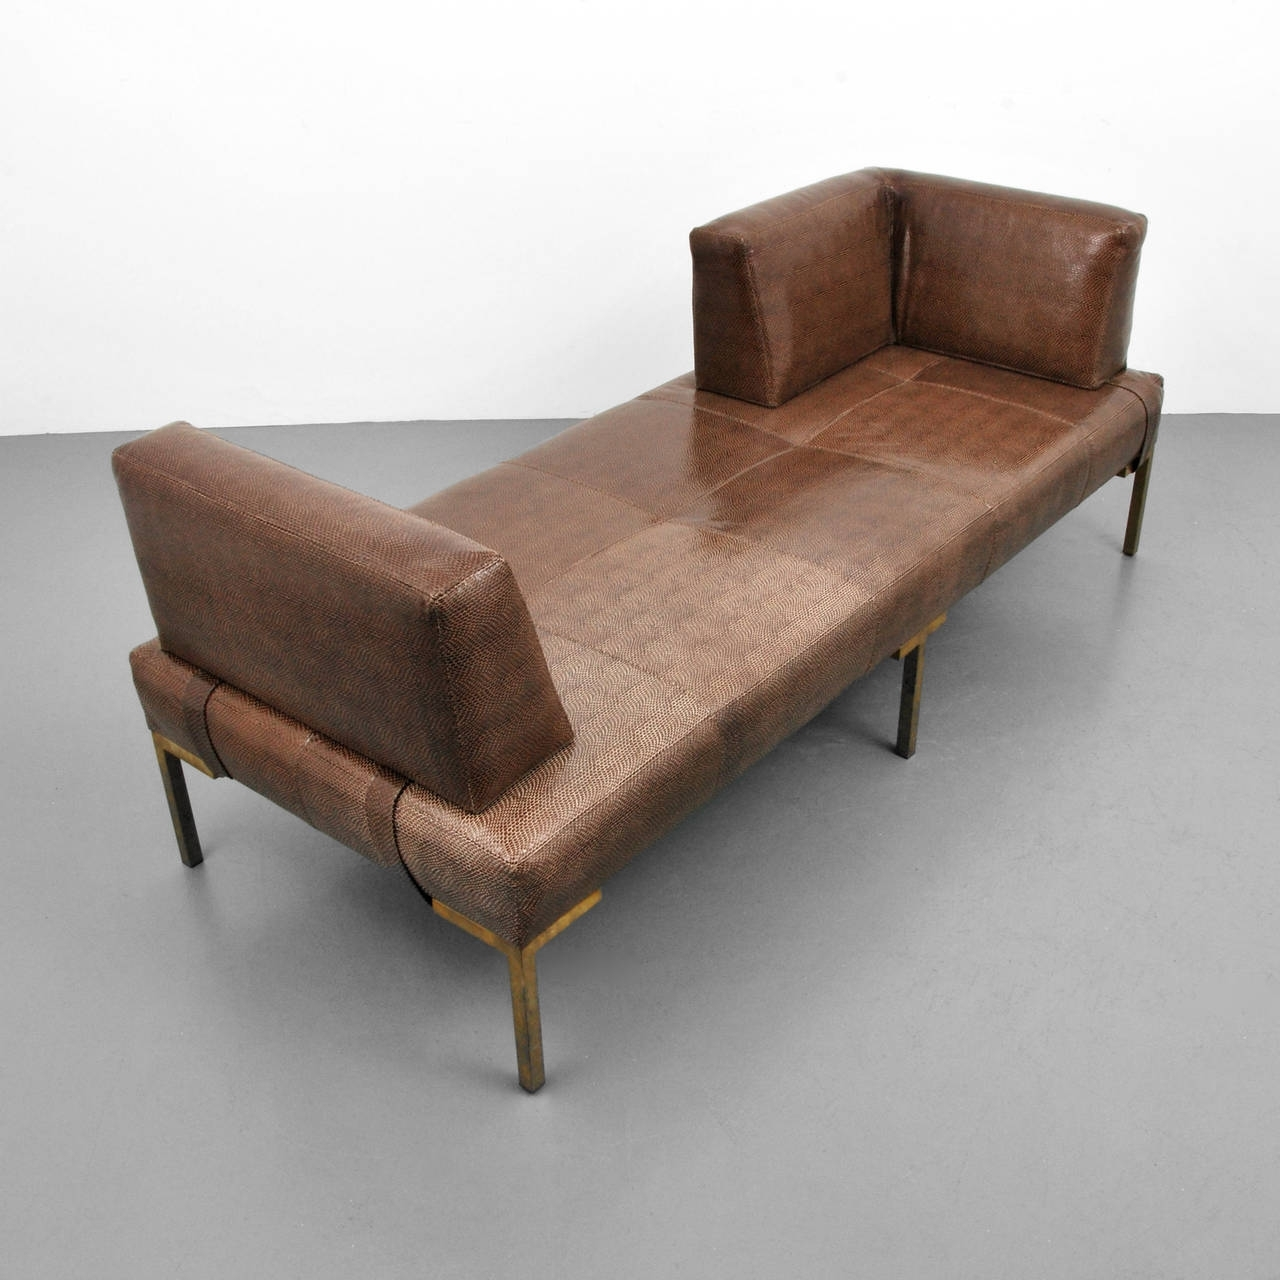 2017 Luigi Gentile Leather Daybeds Or Chaise Lounges, Two Available Pertaining To Modern Chaises (View 1 of 15)